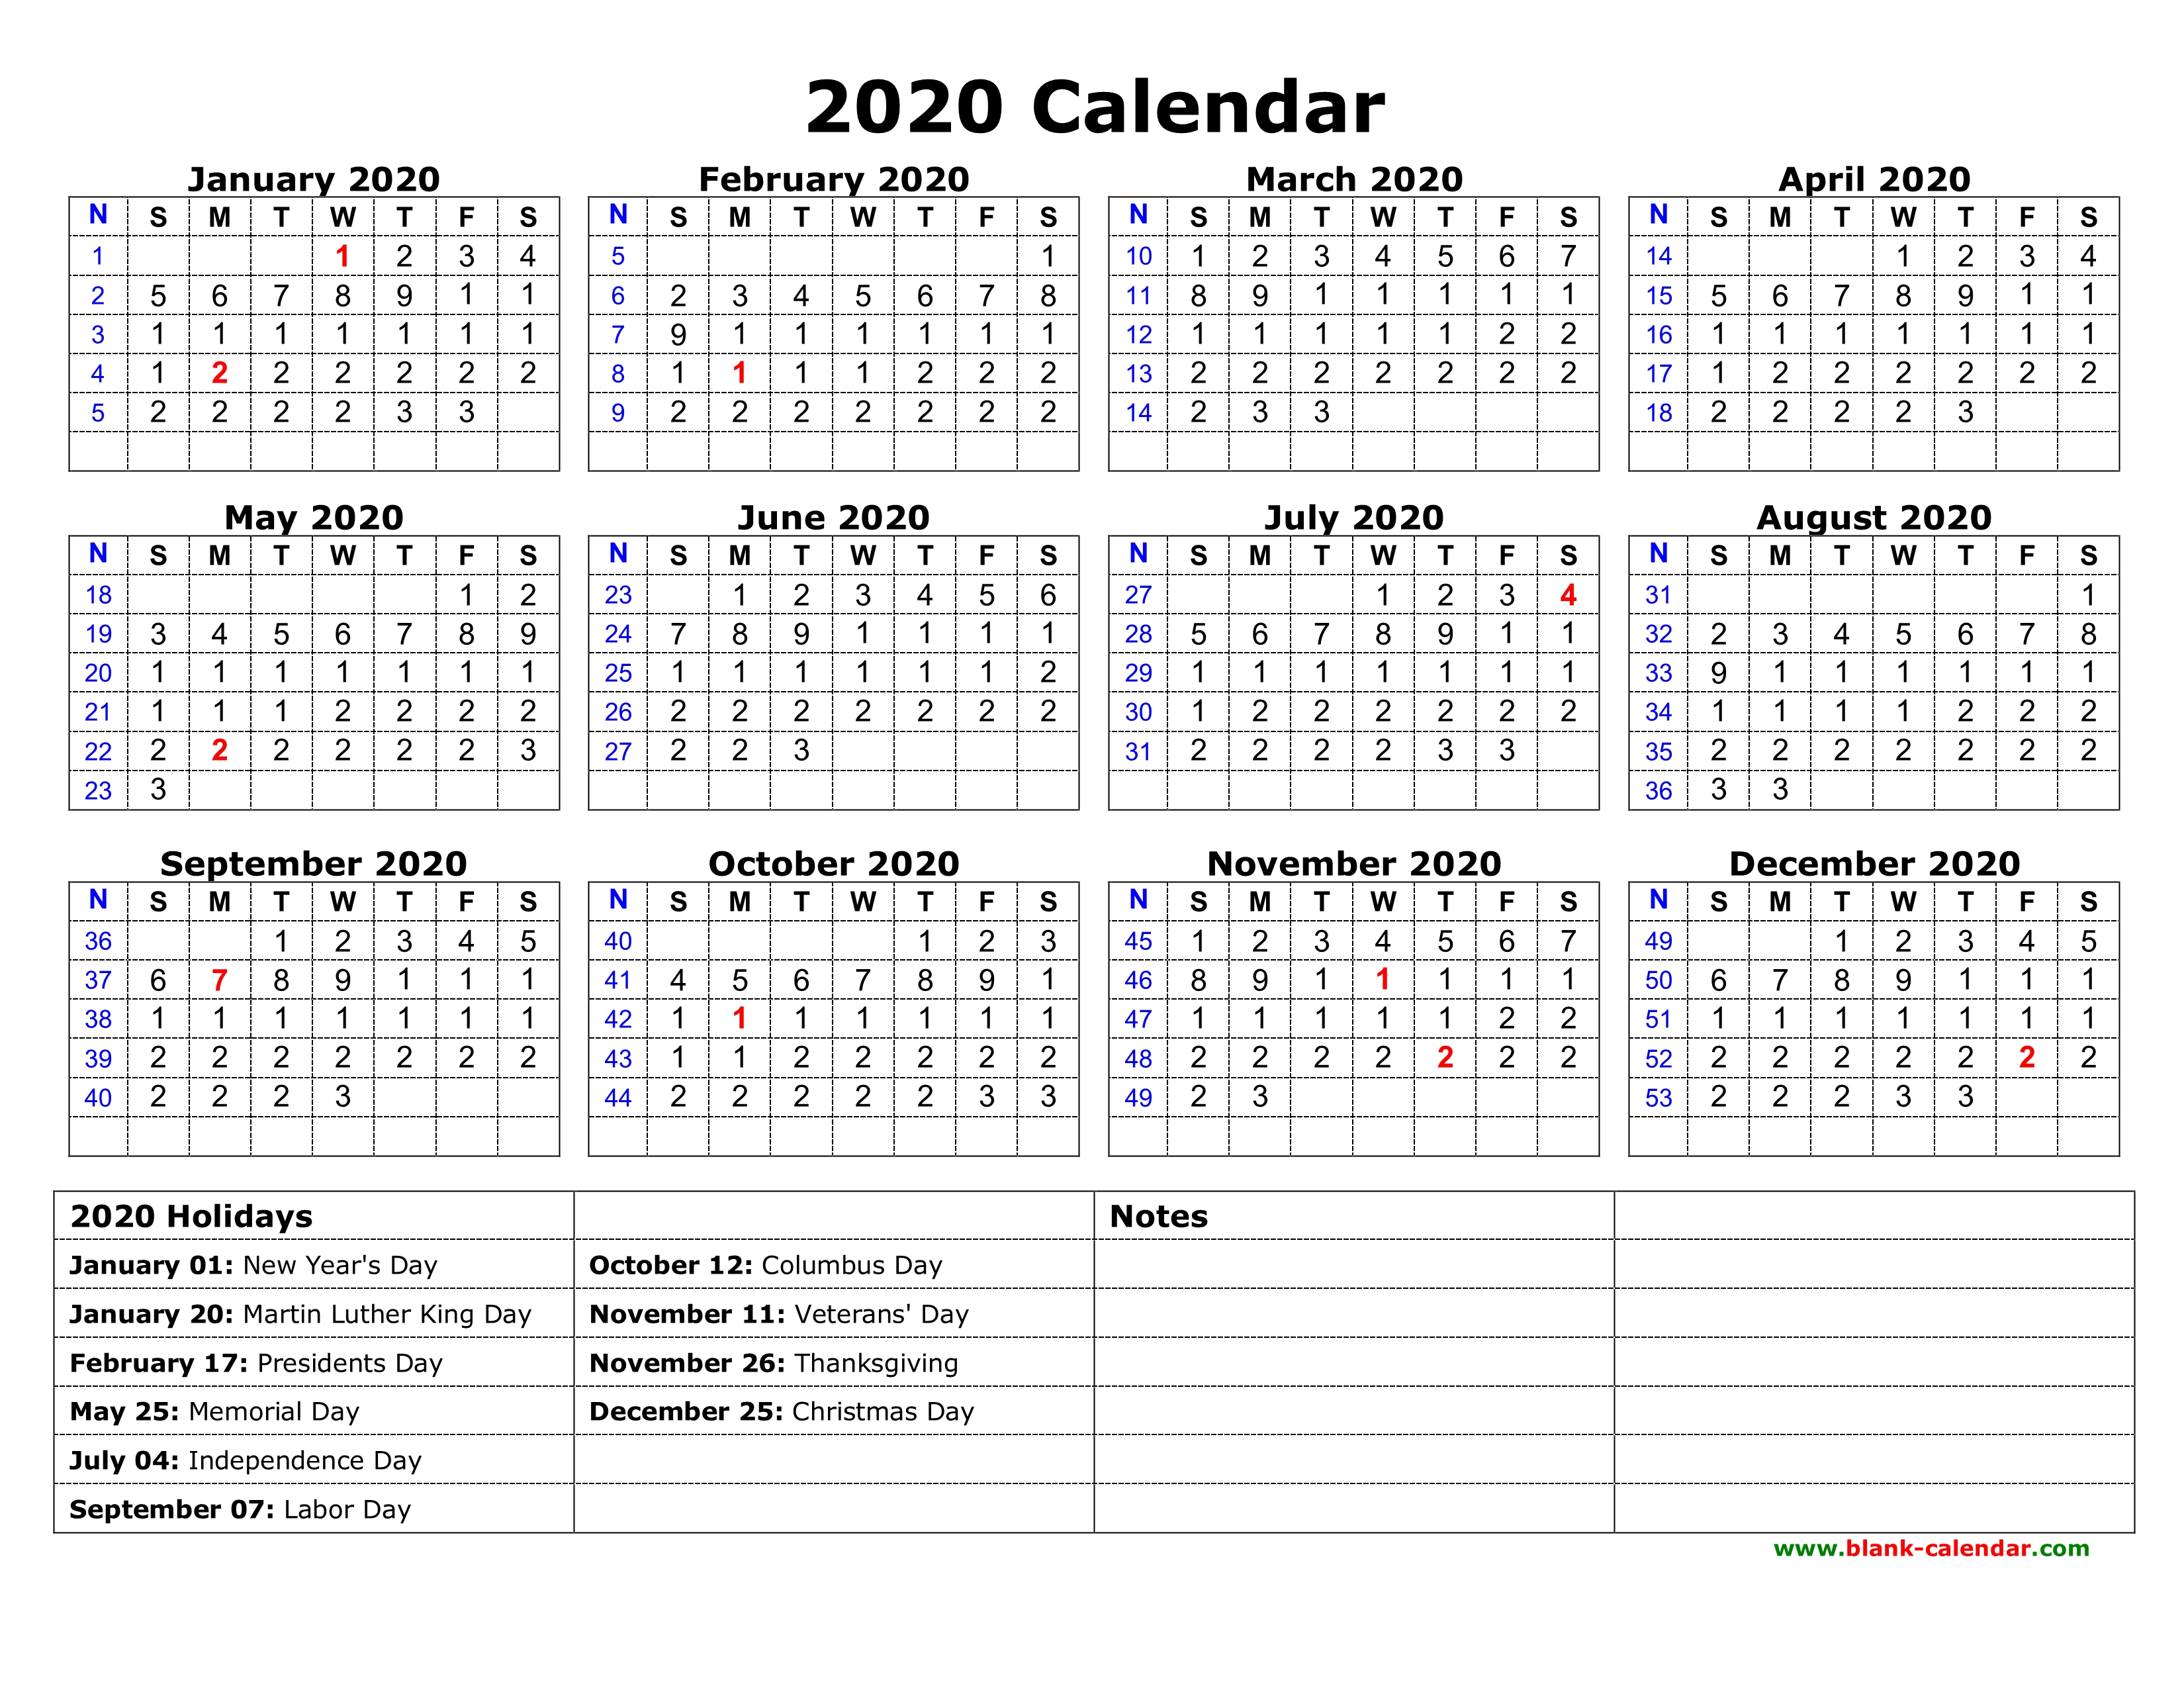 Download 2020 Calendar Free Download Printable Calendar 2020 with US Federal Holidays